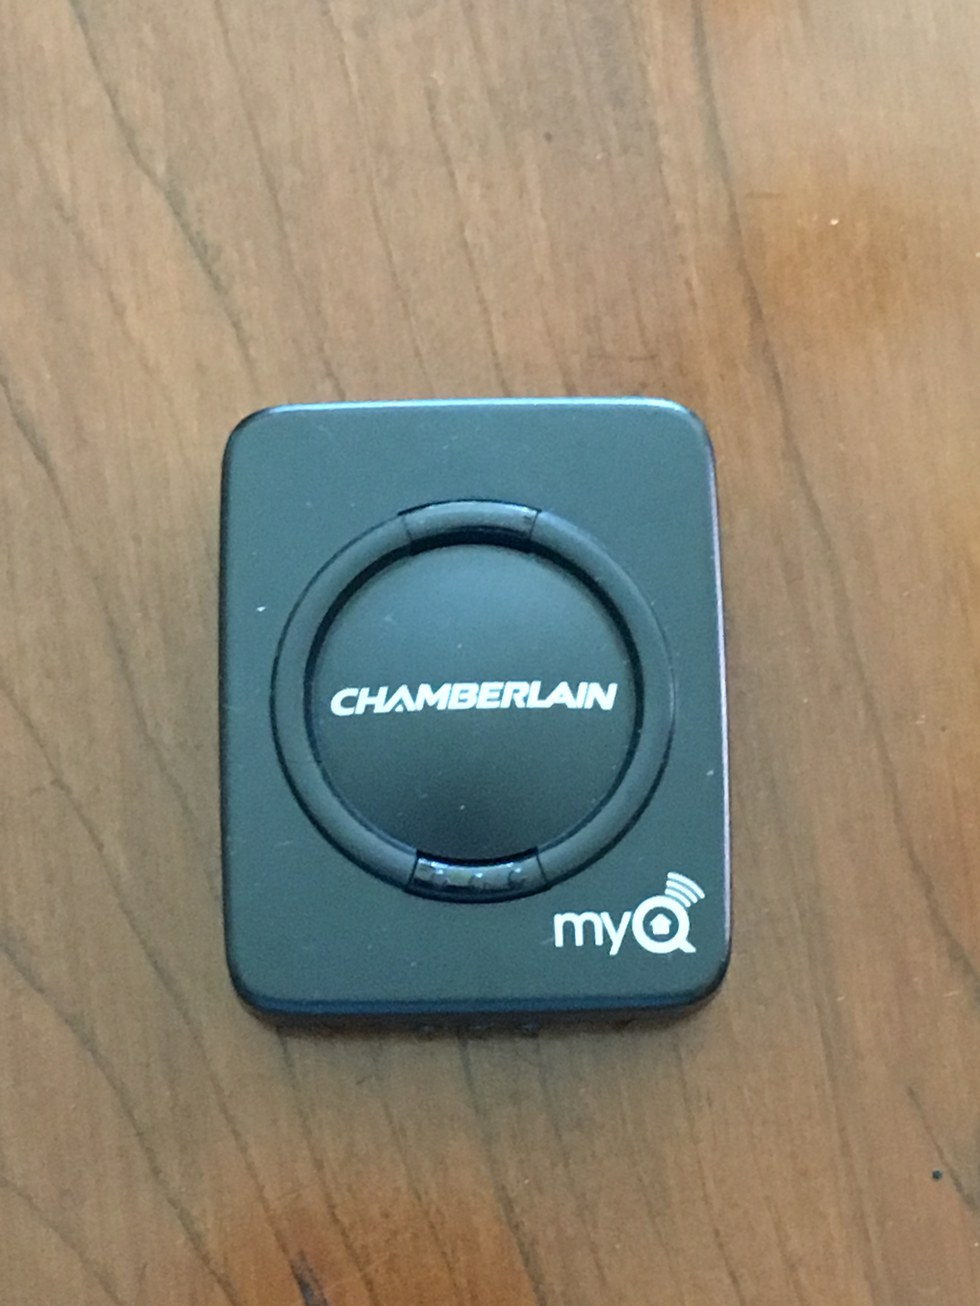 mini opener remote myq chamberlain review smartphone universal garage product